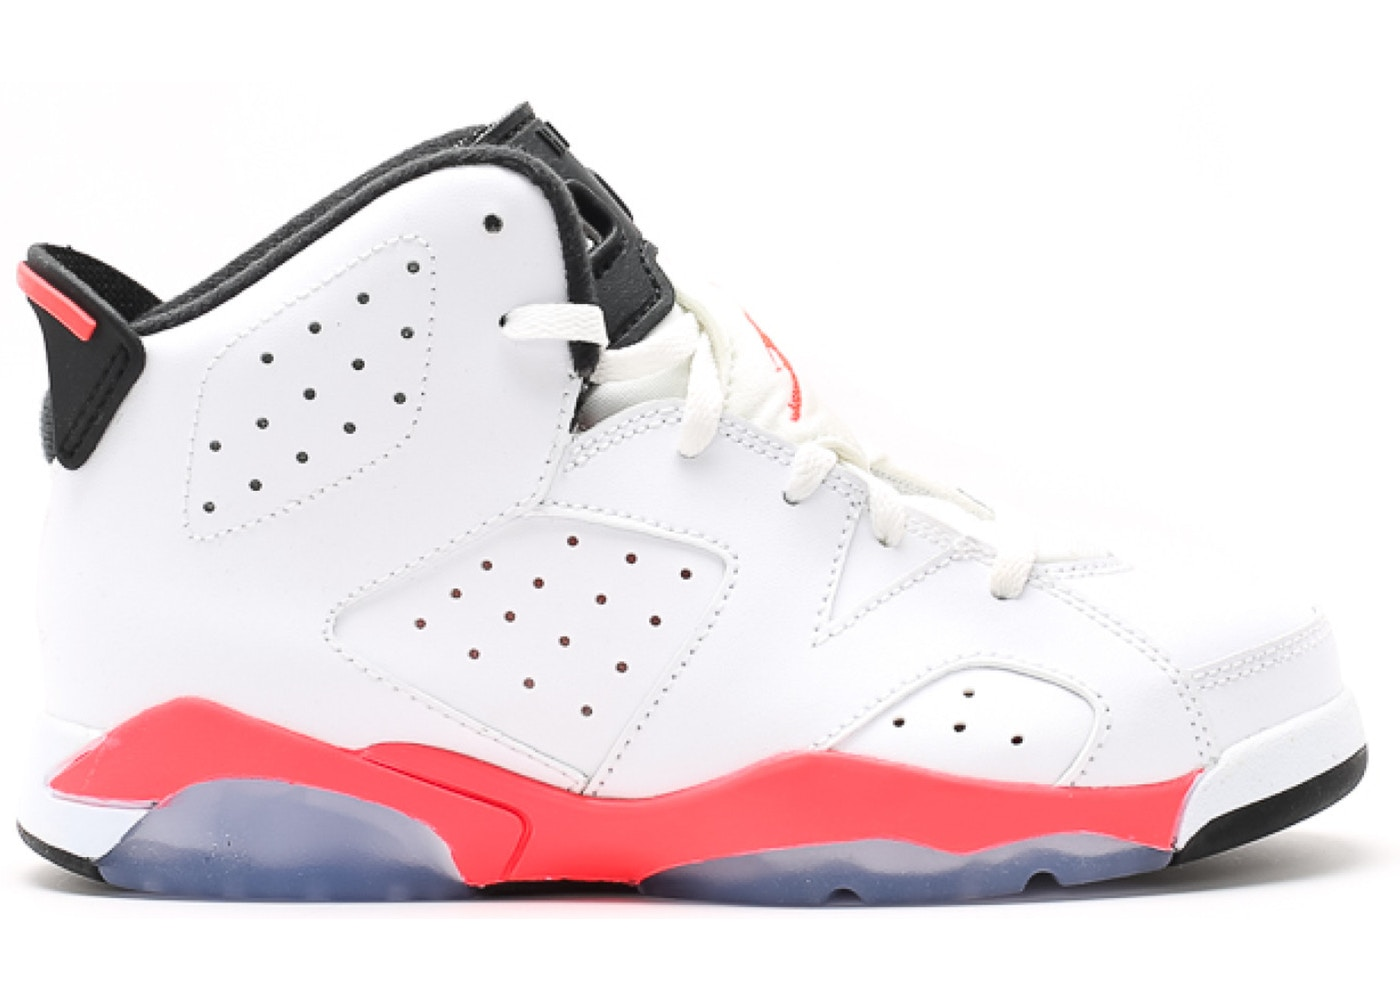 5a00a1799c9925 Jordan 6 Retro White Infrared 2014 (PS) - 384666-123